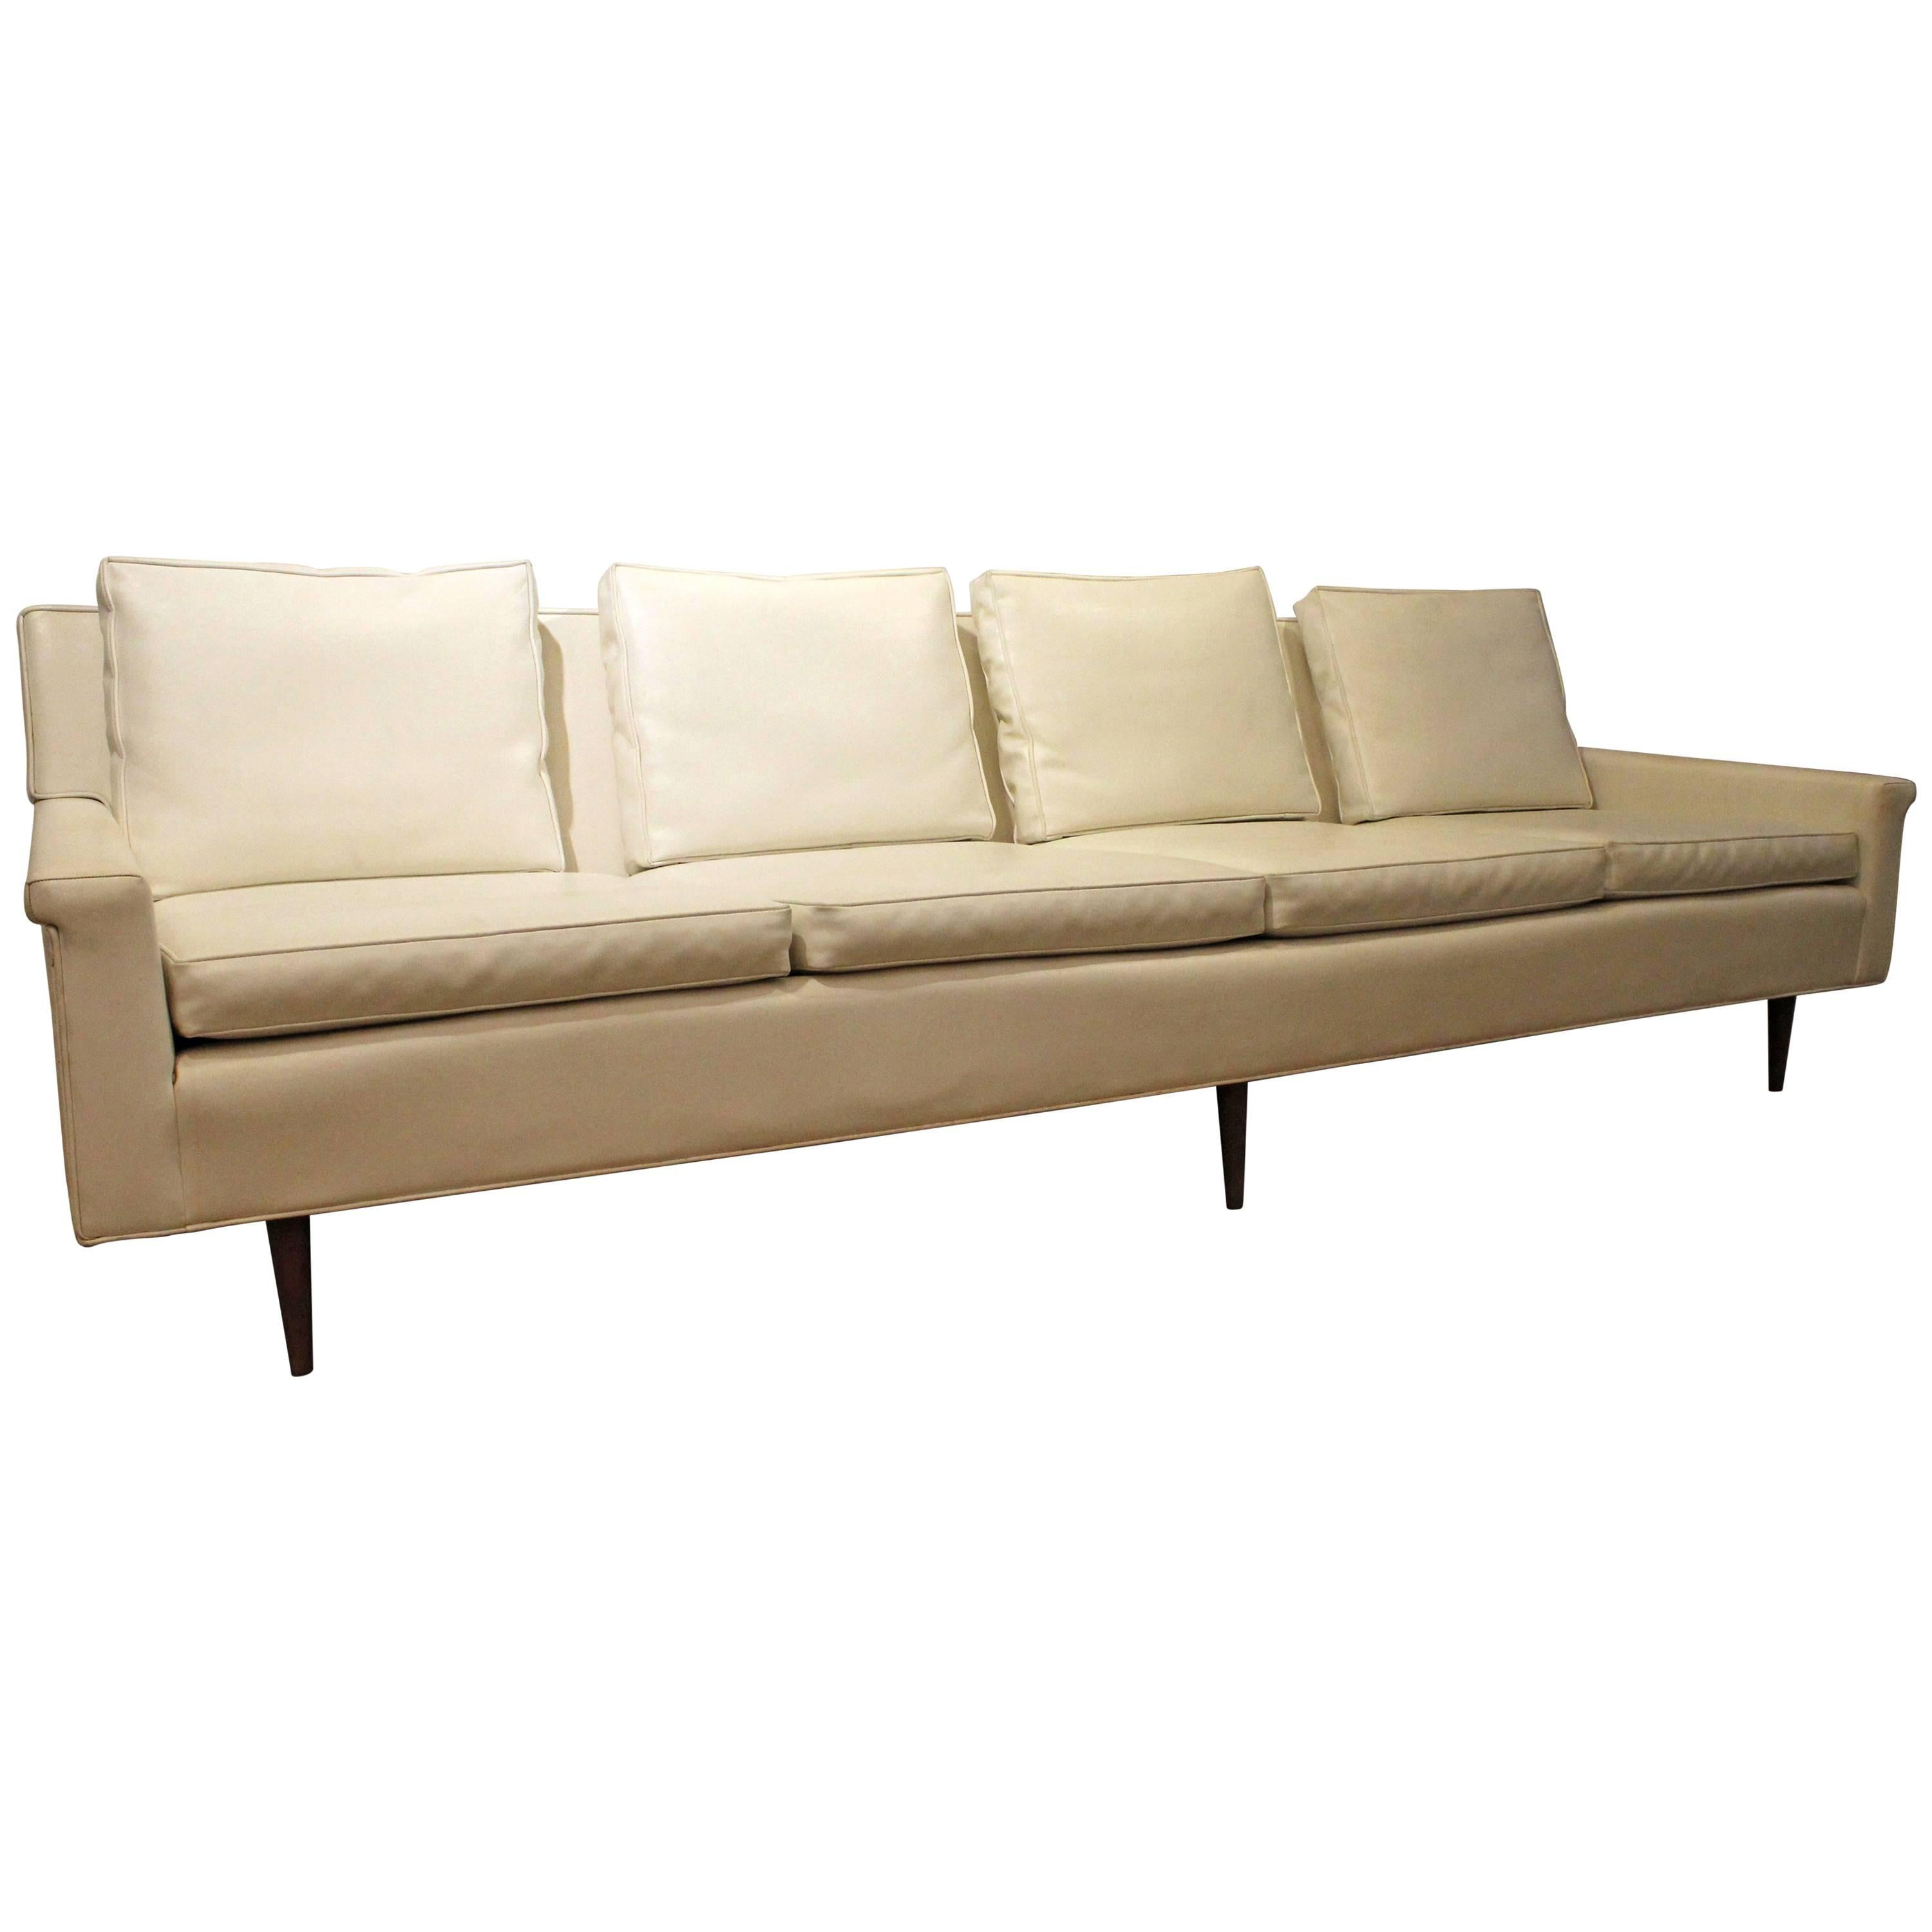 Mid Century Modern Milo Baughman For Thayer Coggin Vinyl Sofa For Sale